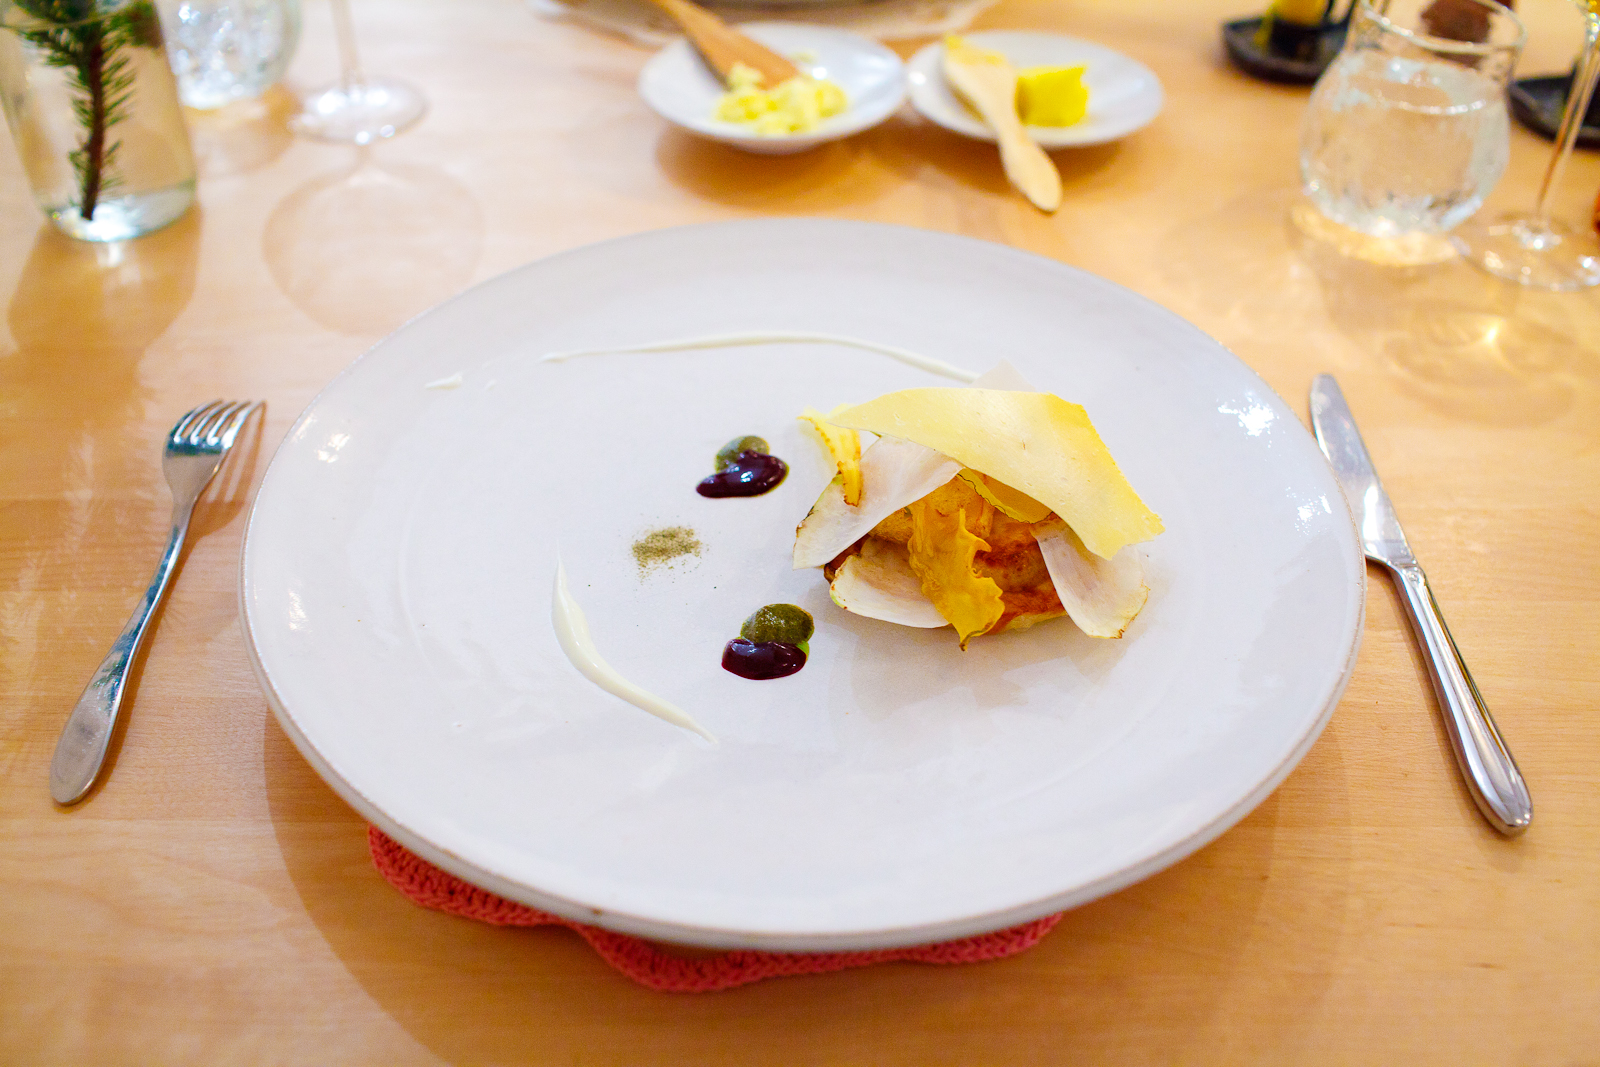 3rd Course: Roasted celariac with baked and fried dried root vegetables, yogurt flavored with black current and dried algae.